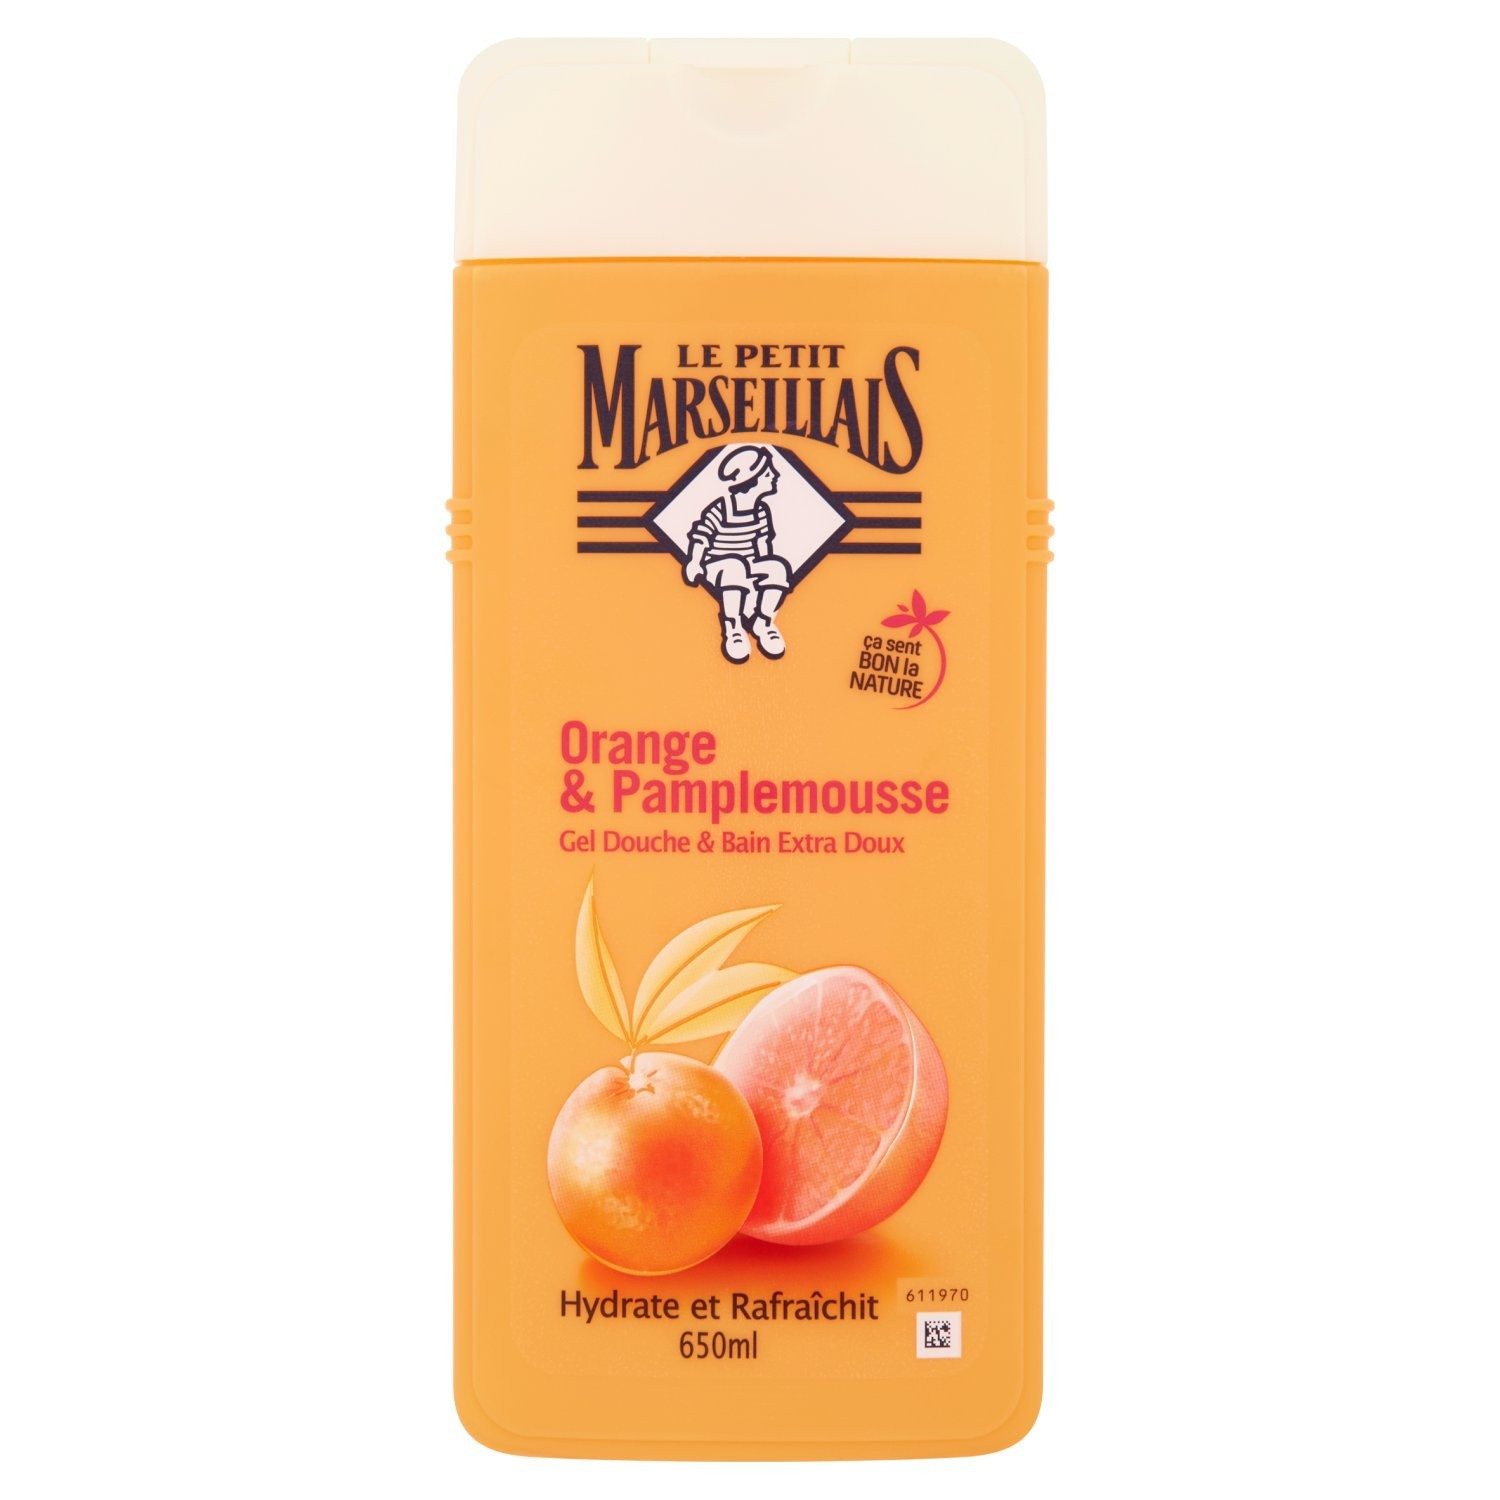 Gel douche orange pamplemousse, Le Petit Marseillais (650 ml)